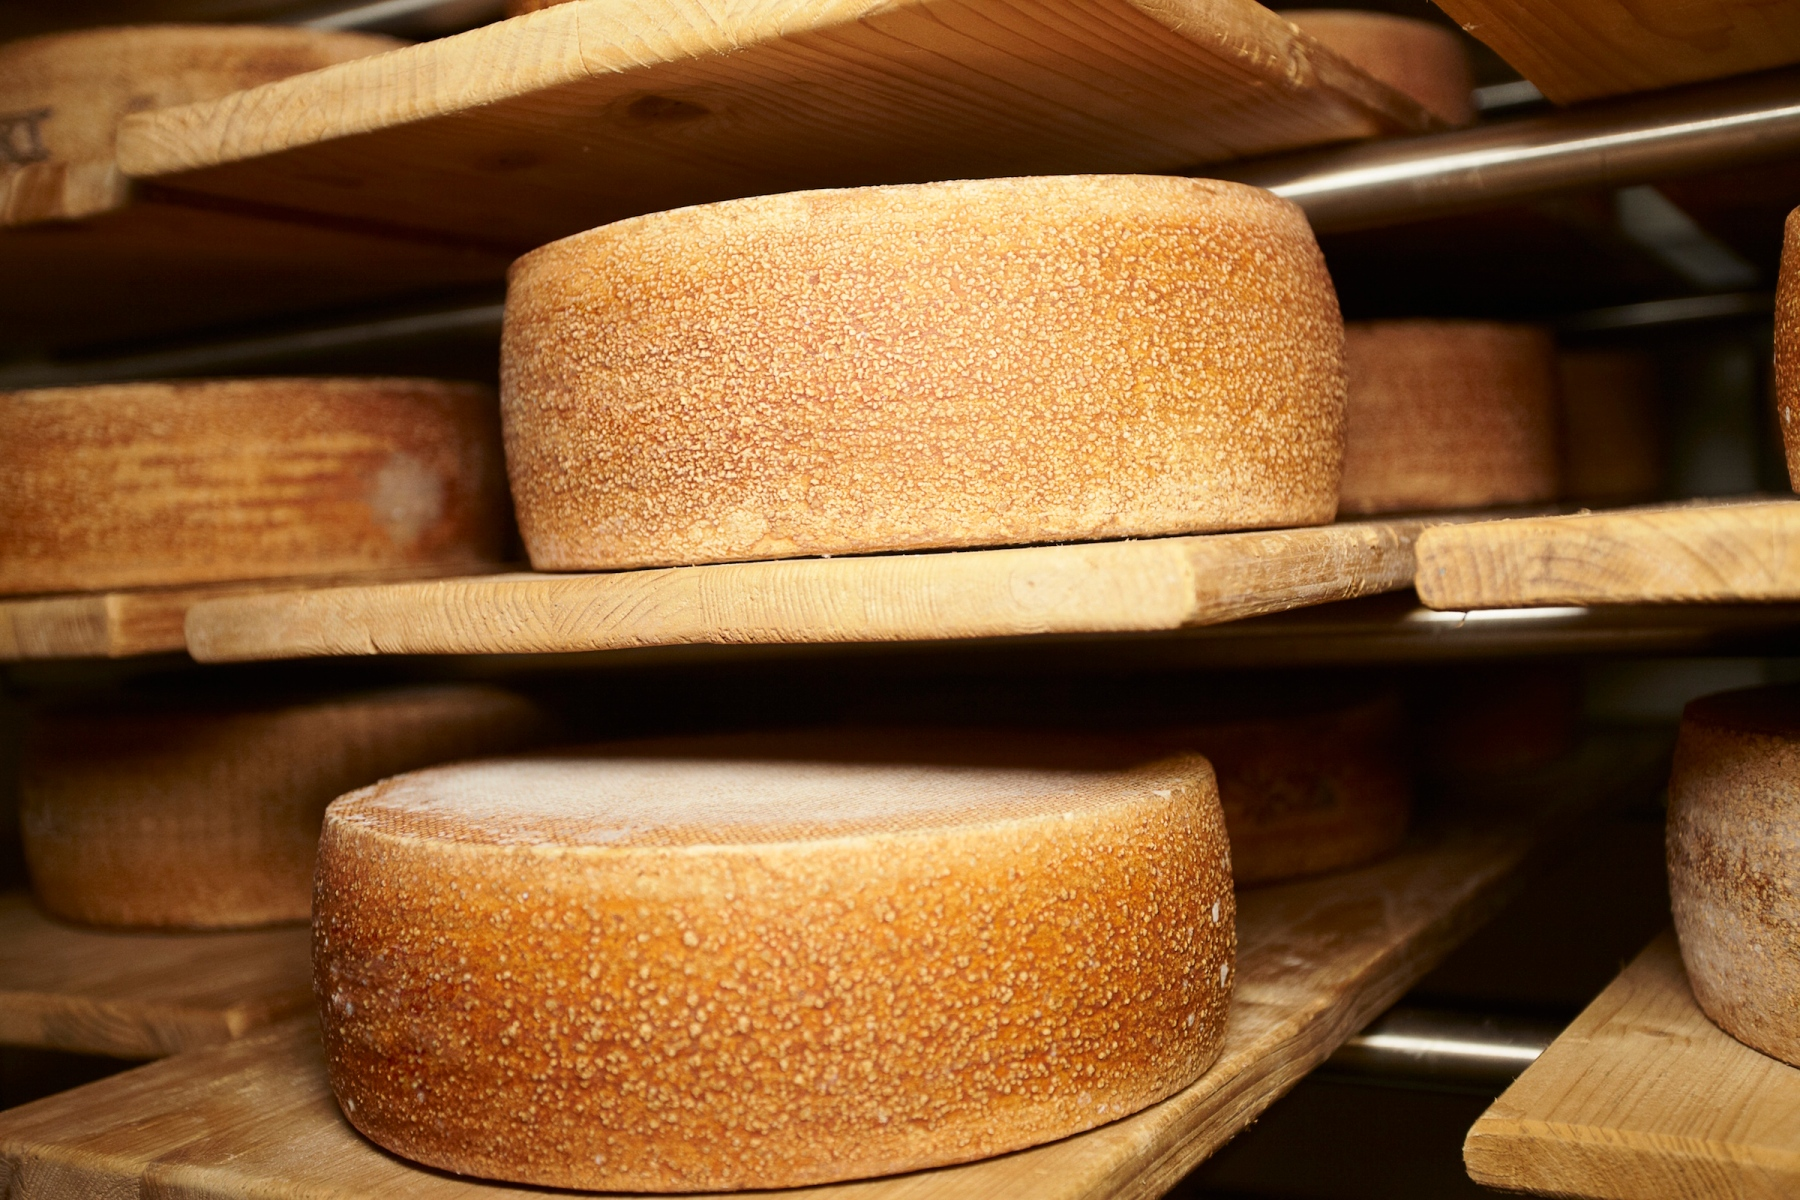 Scientists May Have Found Traces of 7,200-Year-Old Cheese in Croatia